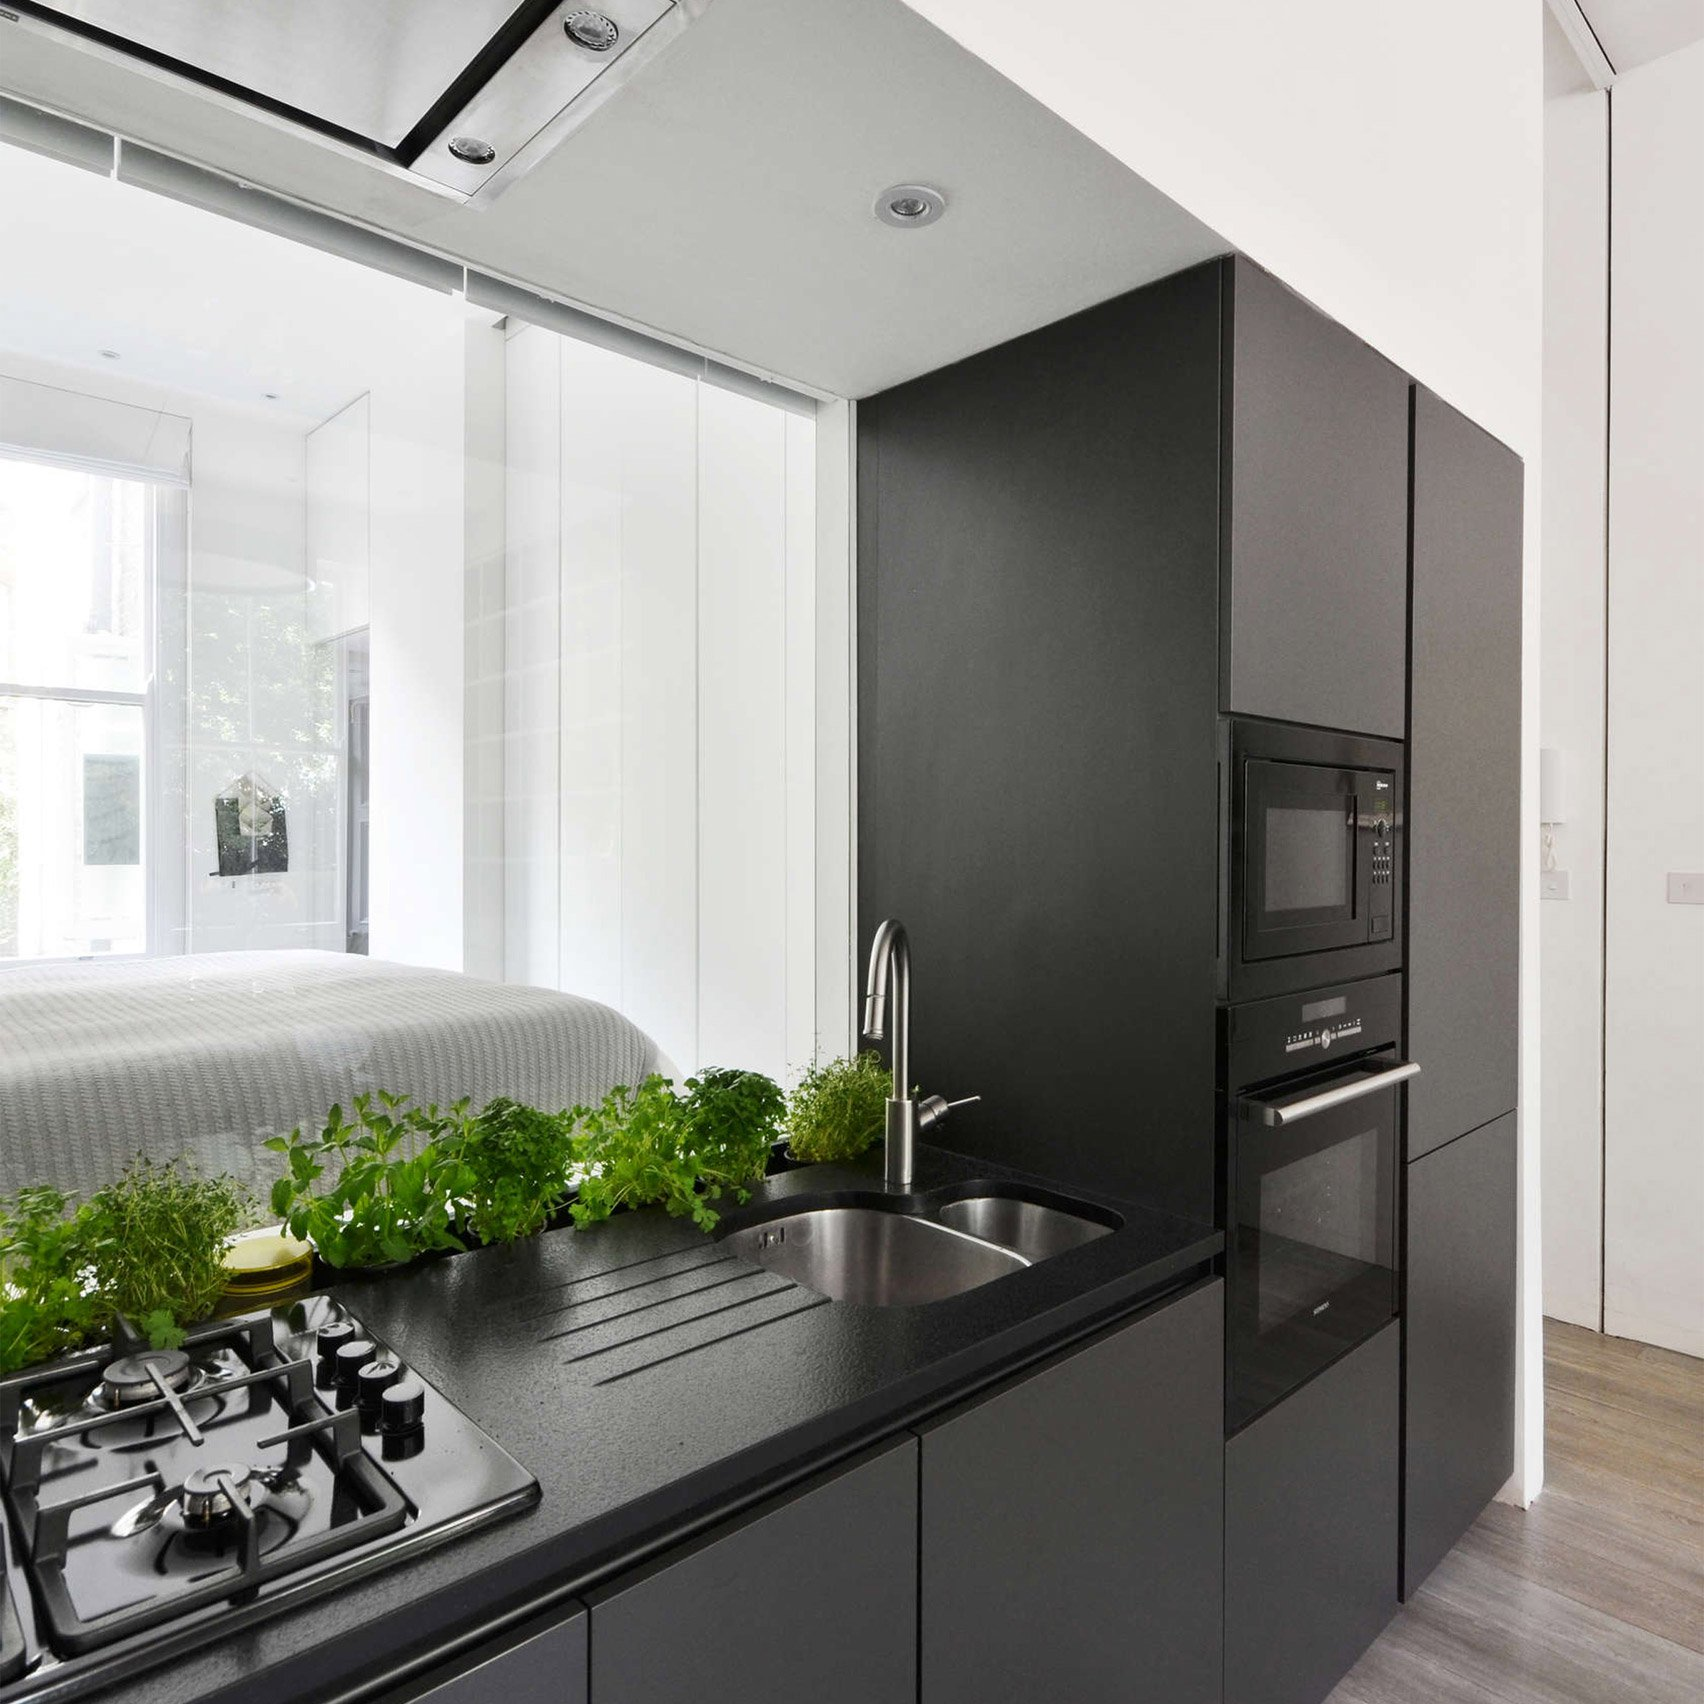 dezeen planned kitchen with high ceilings